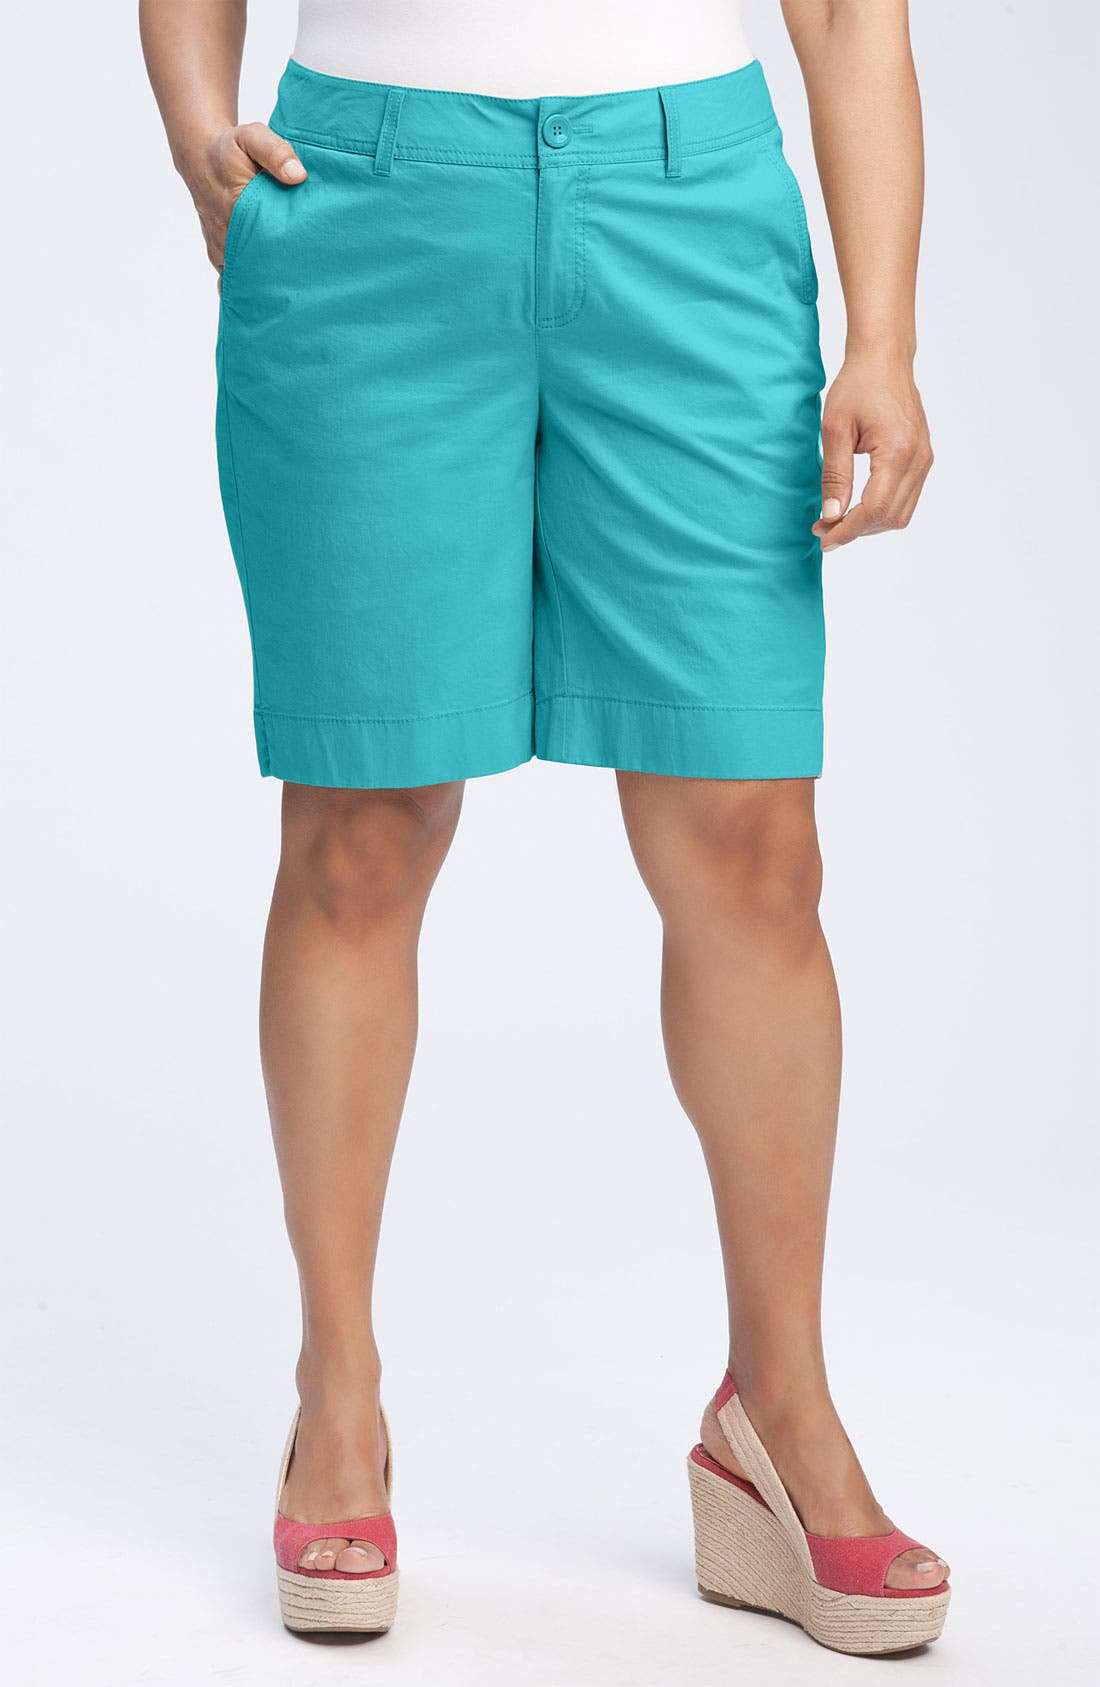 Alternate Image 1 Selected - Sejour Stretch Twill Bermuda Shorts (Plus Size)